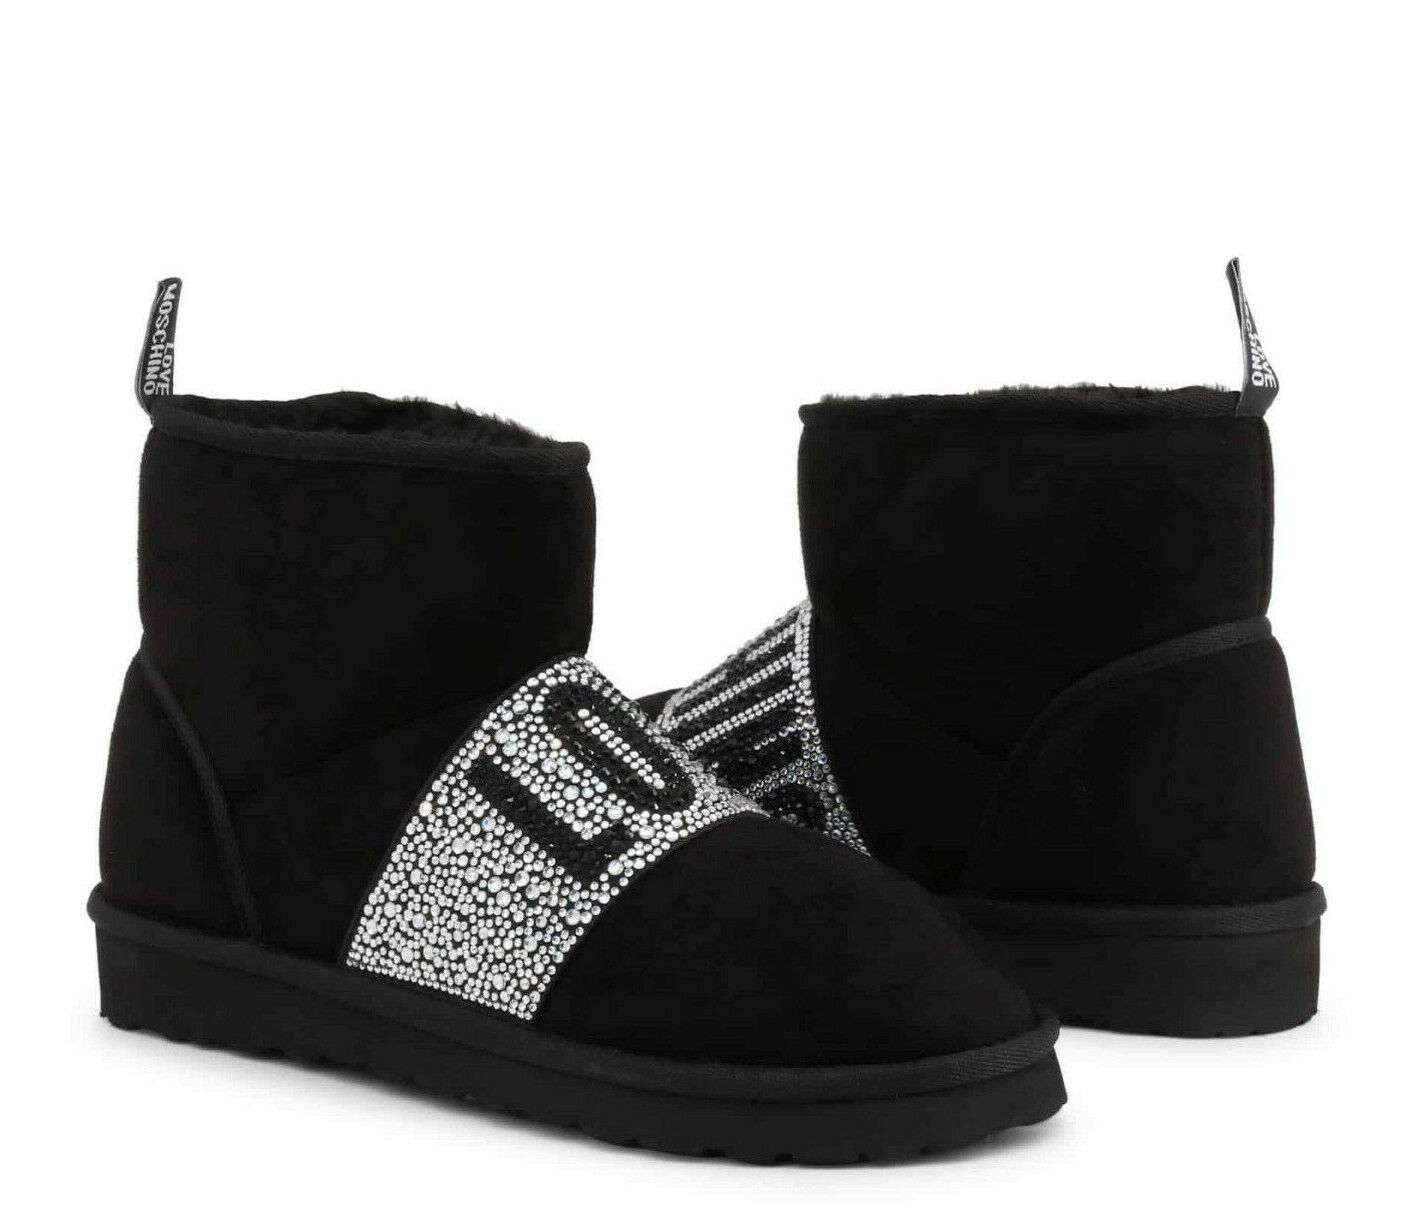 LOVE MOSCHINO Women's Ankle Boots Slip